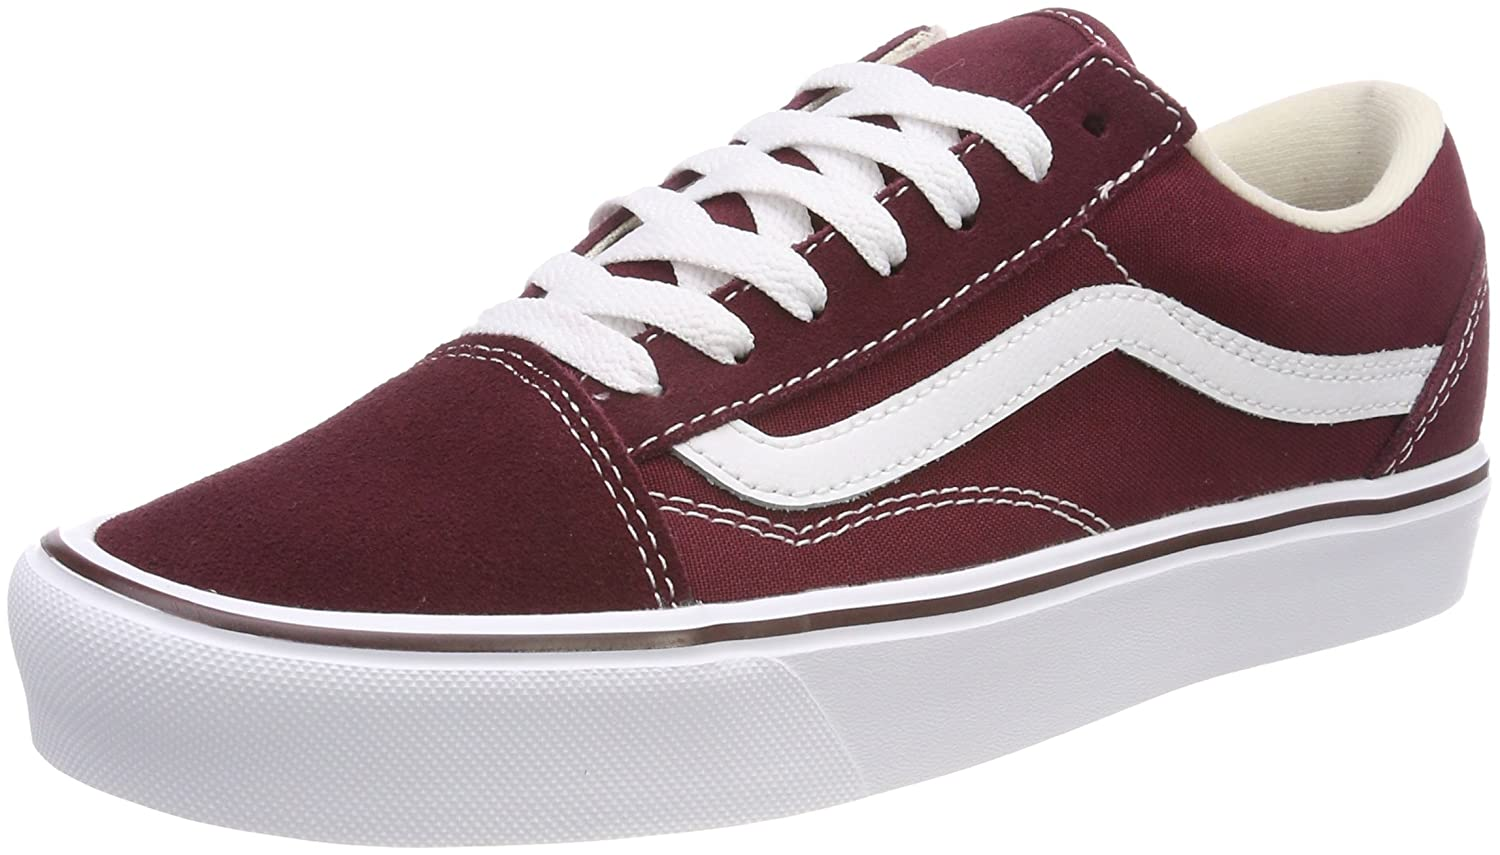 7436a97a37b Vans Unisex Adults  Old Skool Lite Trainers